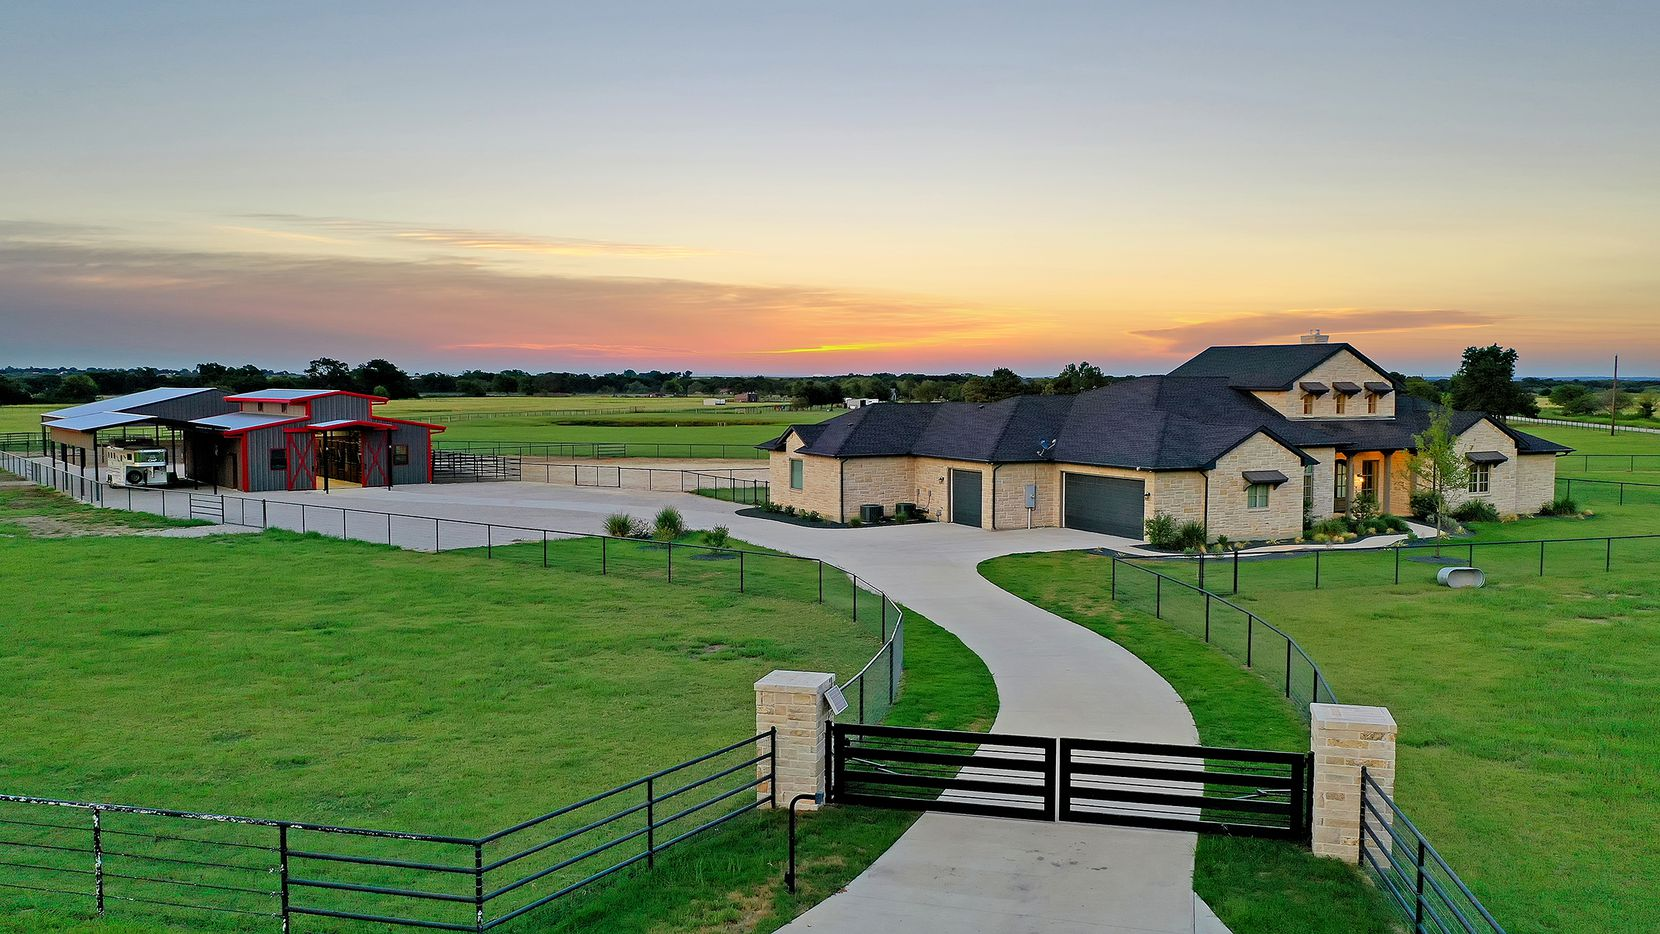 The 12-acre ag exempt equestrian property at 12451 Foutch Road in Pilot Point is priced at $1,574,900.